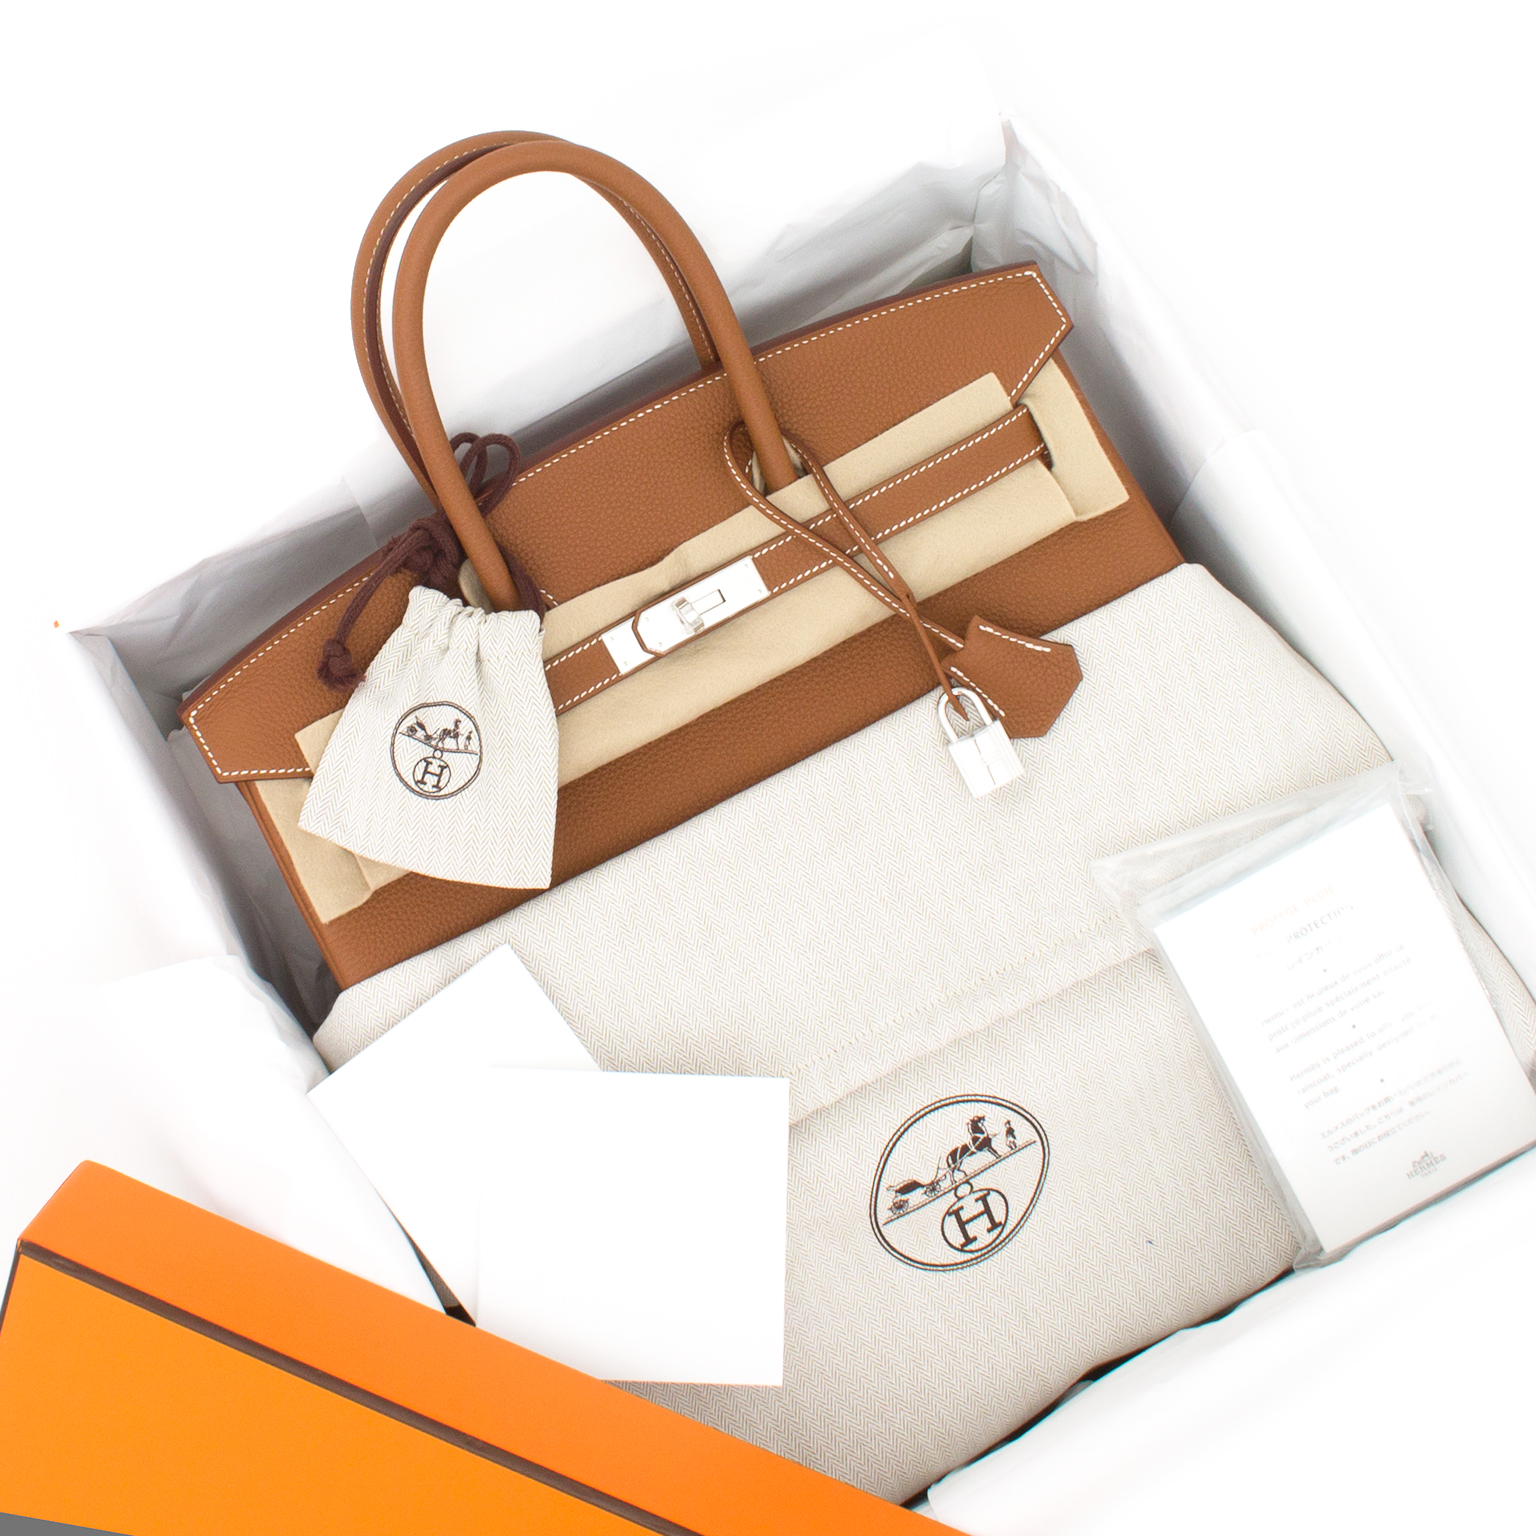 Birkin - Bags Your go-to shopping place for vintage \u0026amp; pre-loved ...